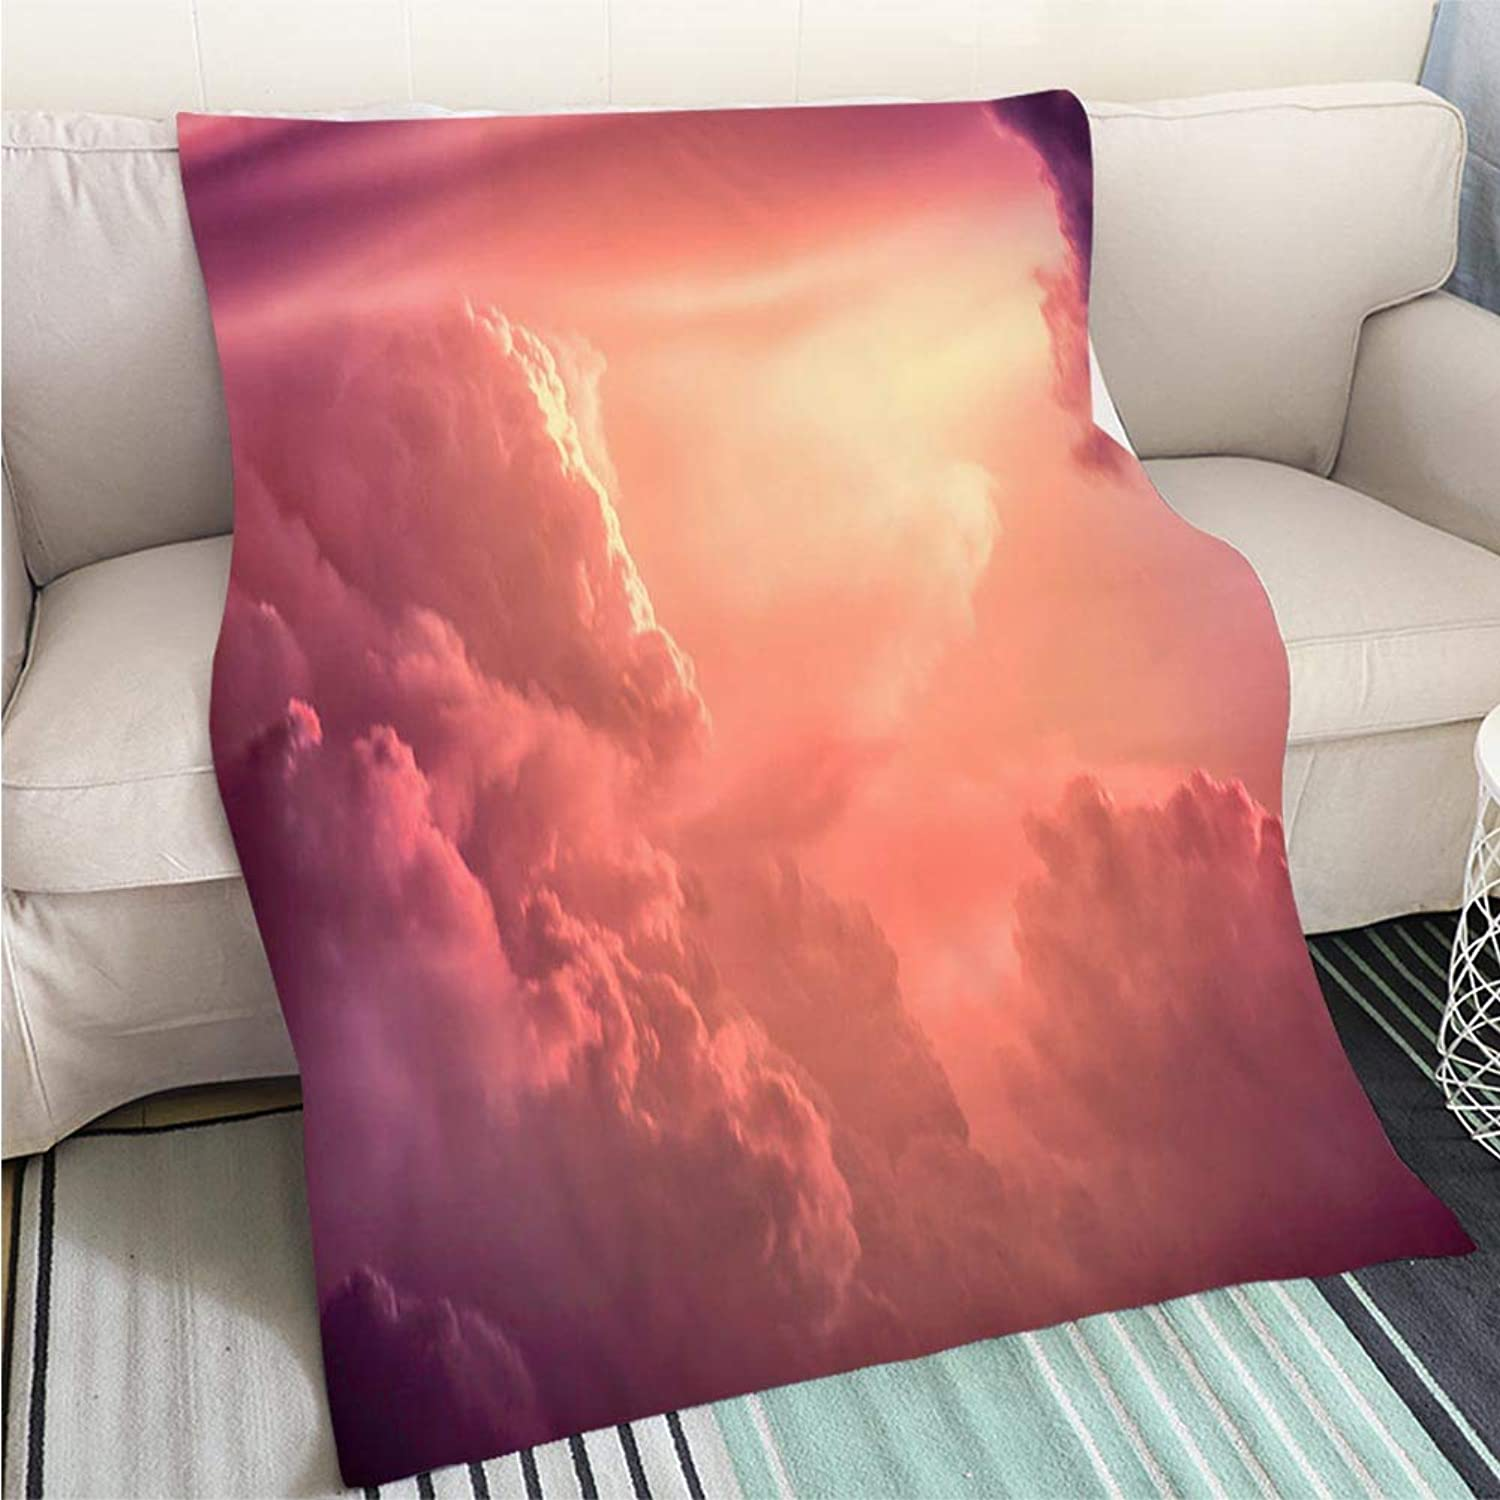 BEICICI Art Design Photos Cool Quilt color Toned Image Dramatic Sunset Sky with colorful Clouds Fashion Ultra Cozy Flannel Blanket